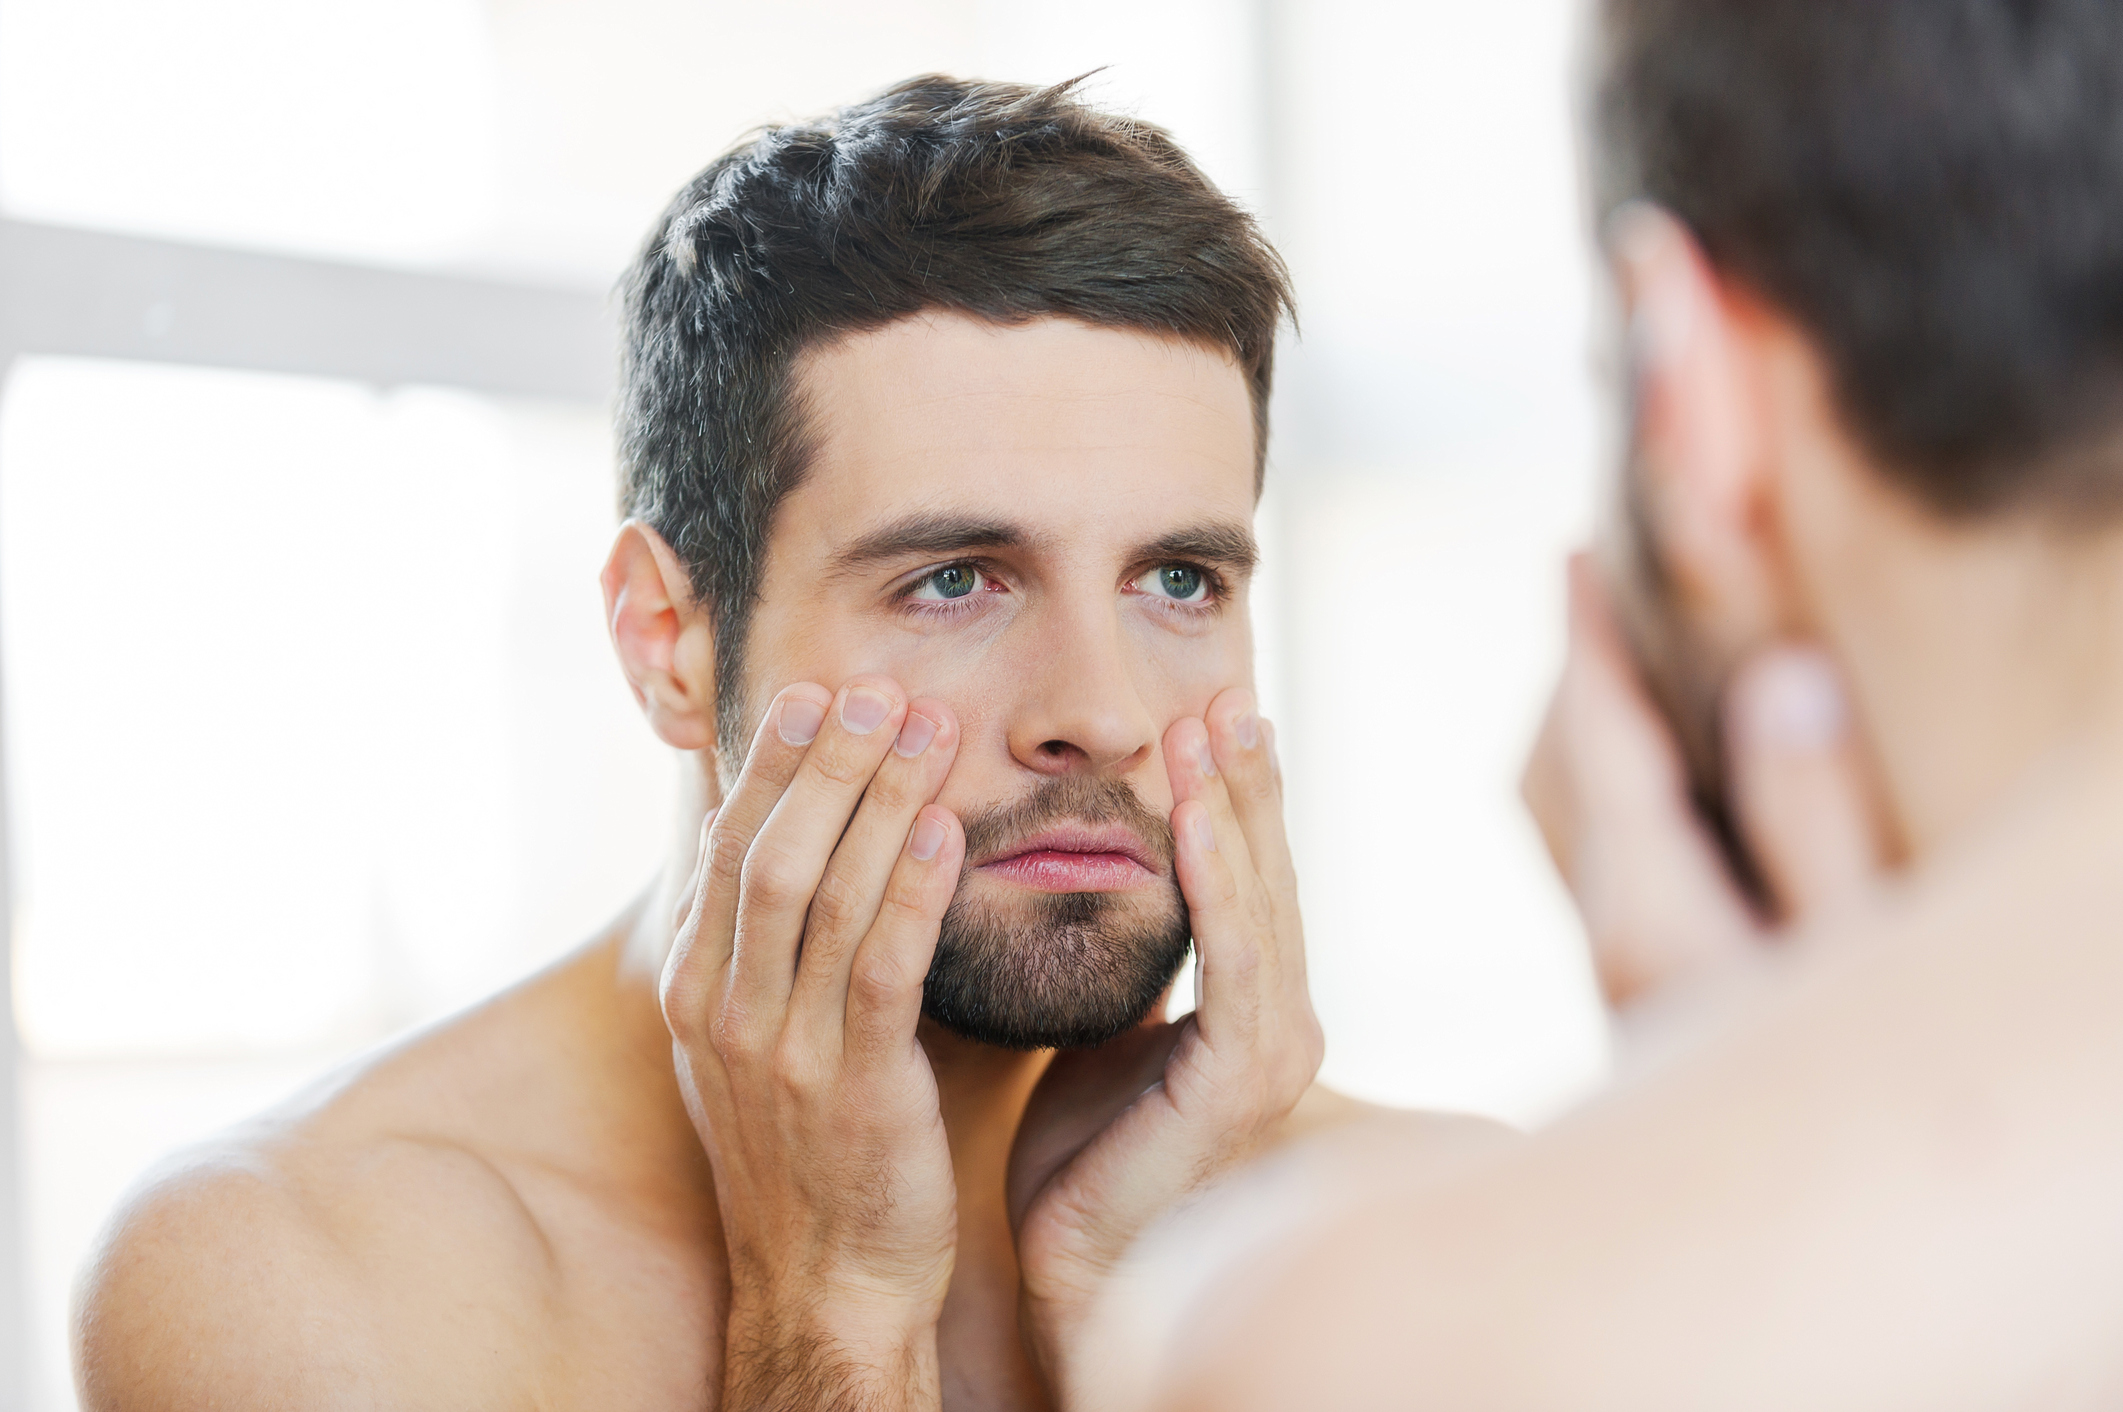 Frustrated young man touching his face and looking at himself while standing against a mirror